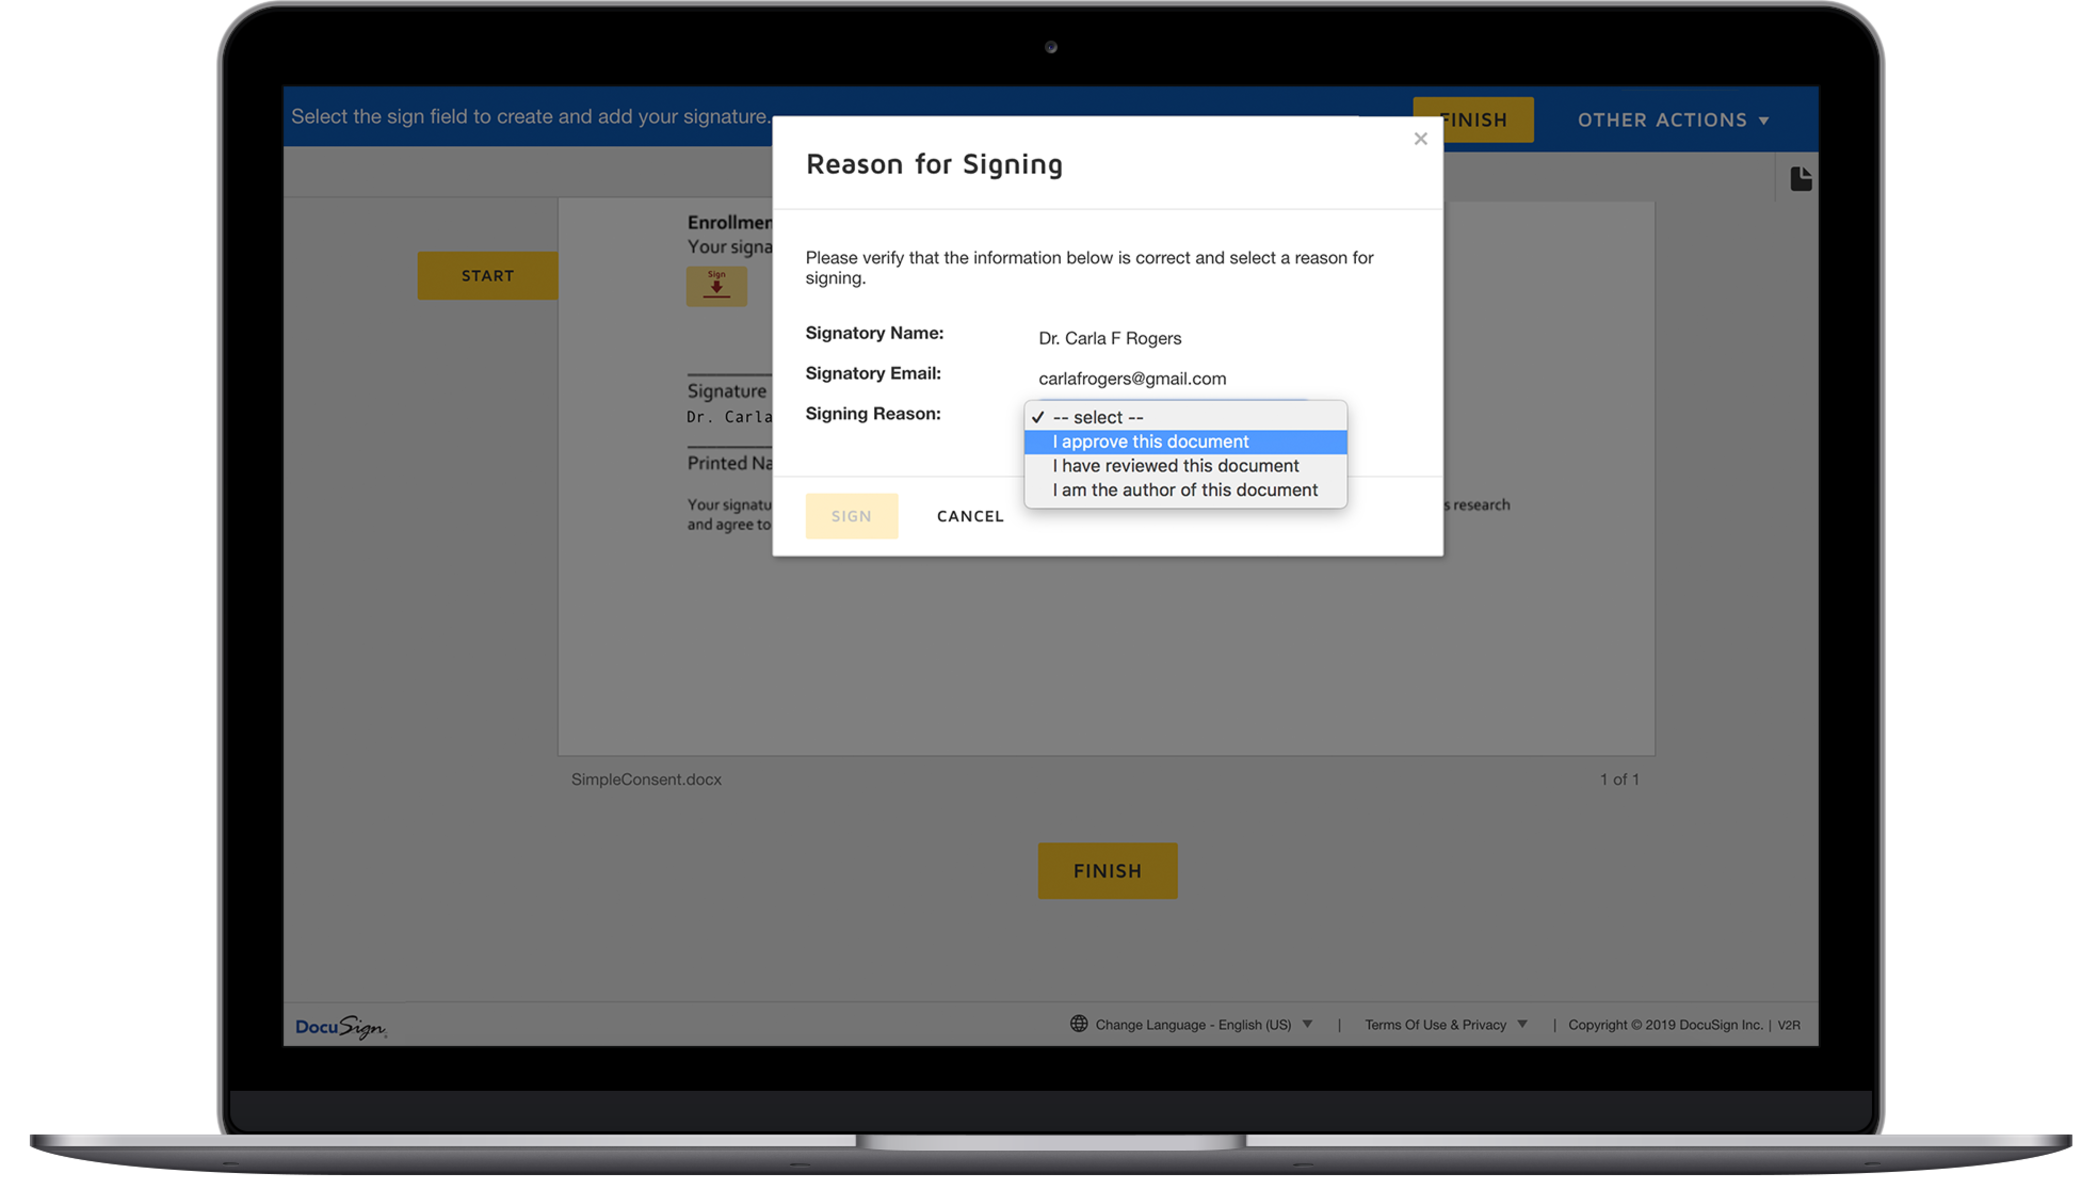 The DocuSign signing interface showing a dropdown for why a signer is signing the document.